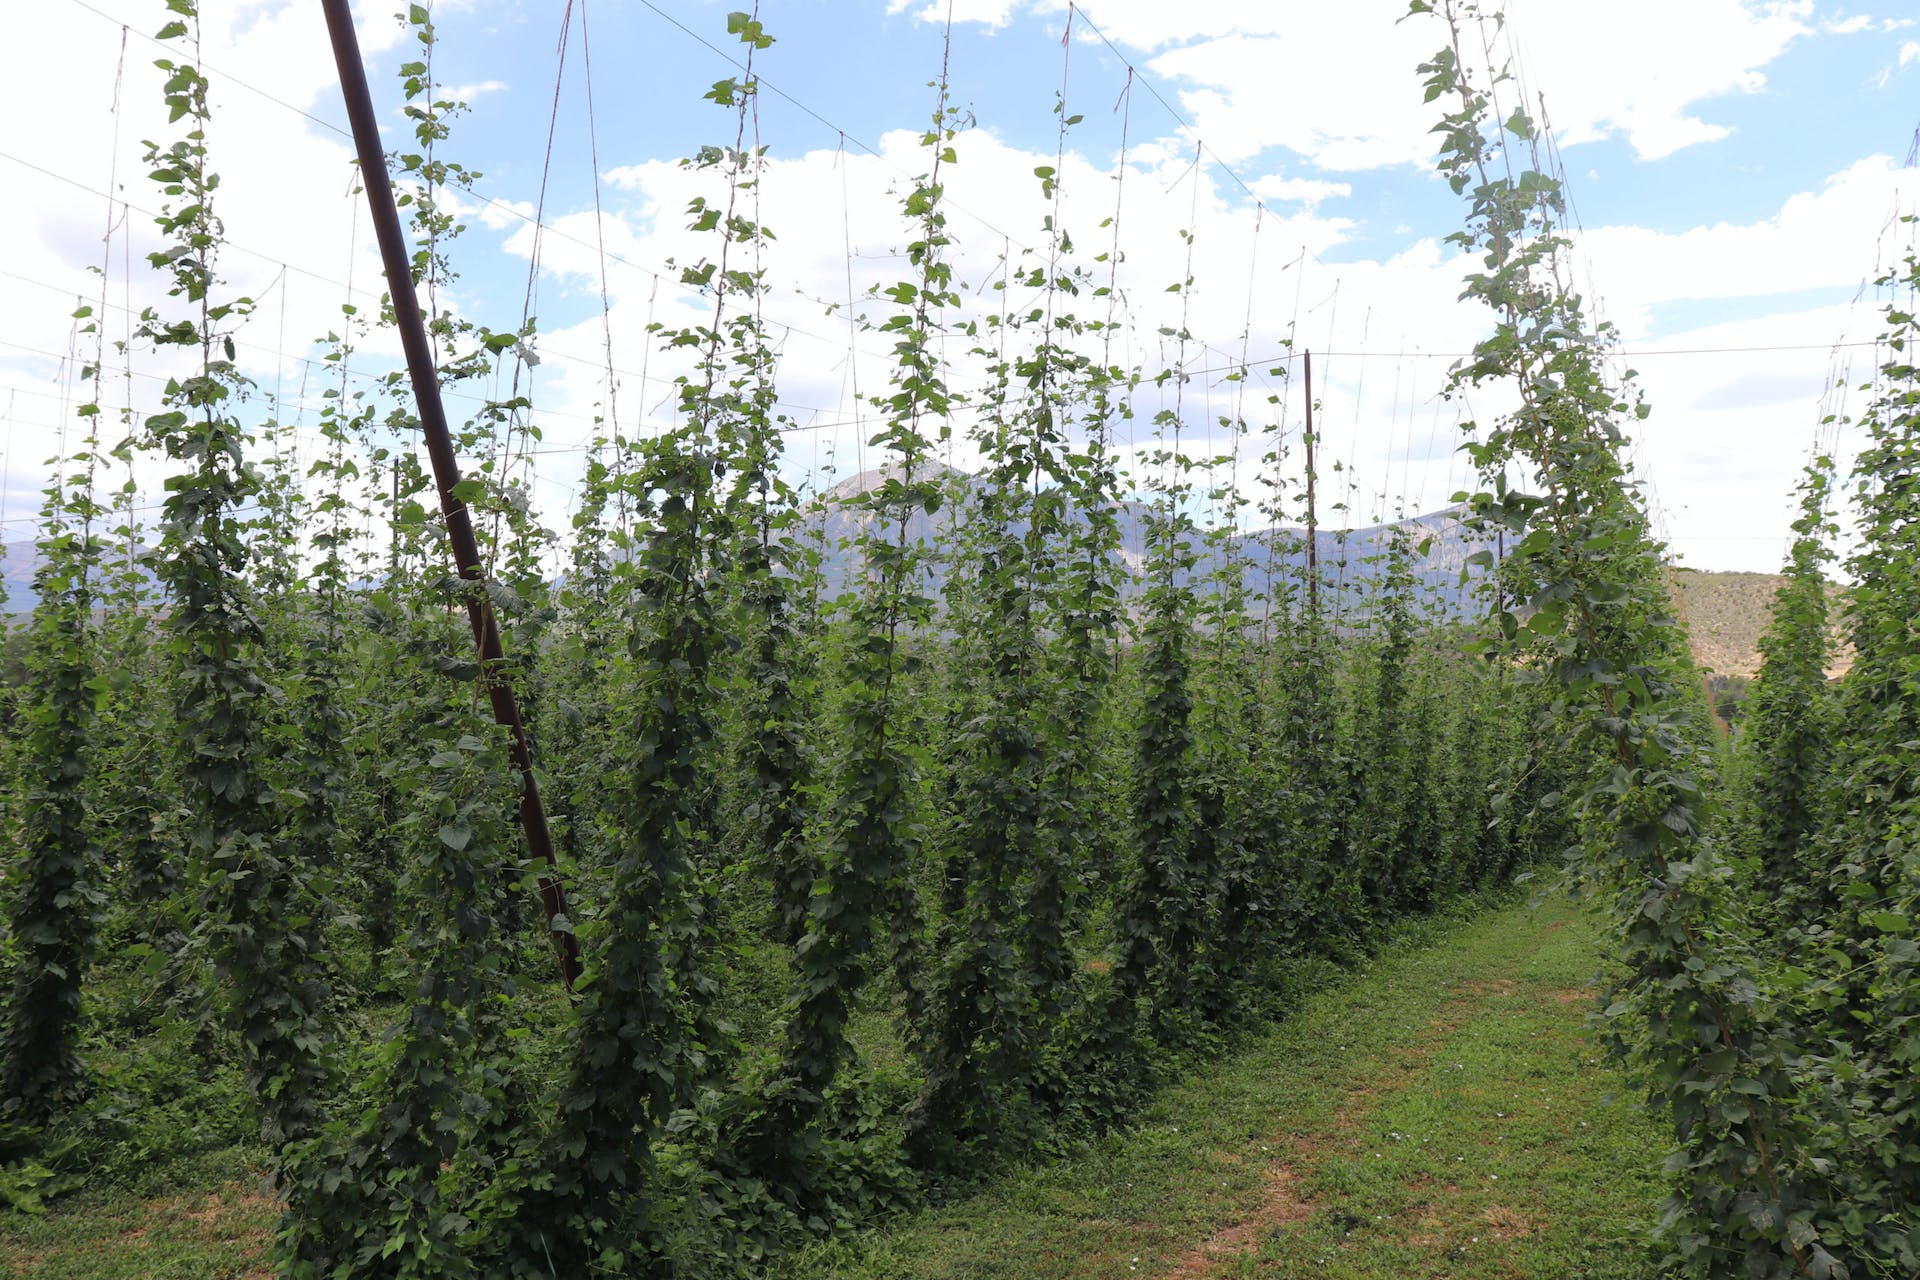 High Wire Hops Farm